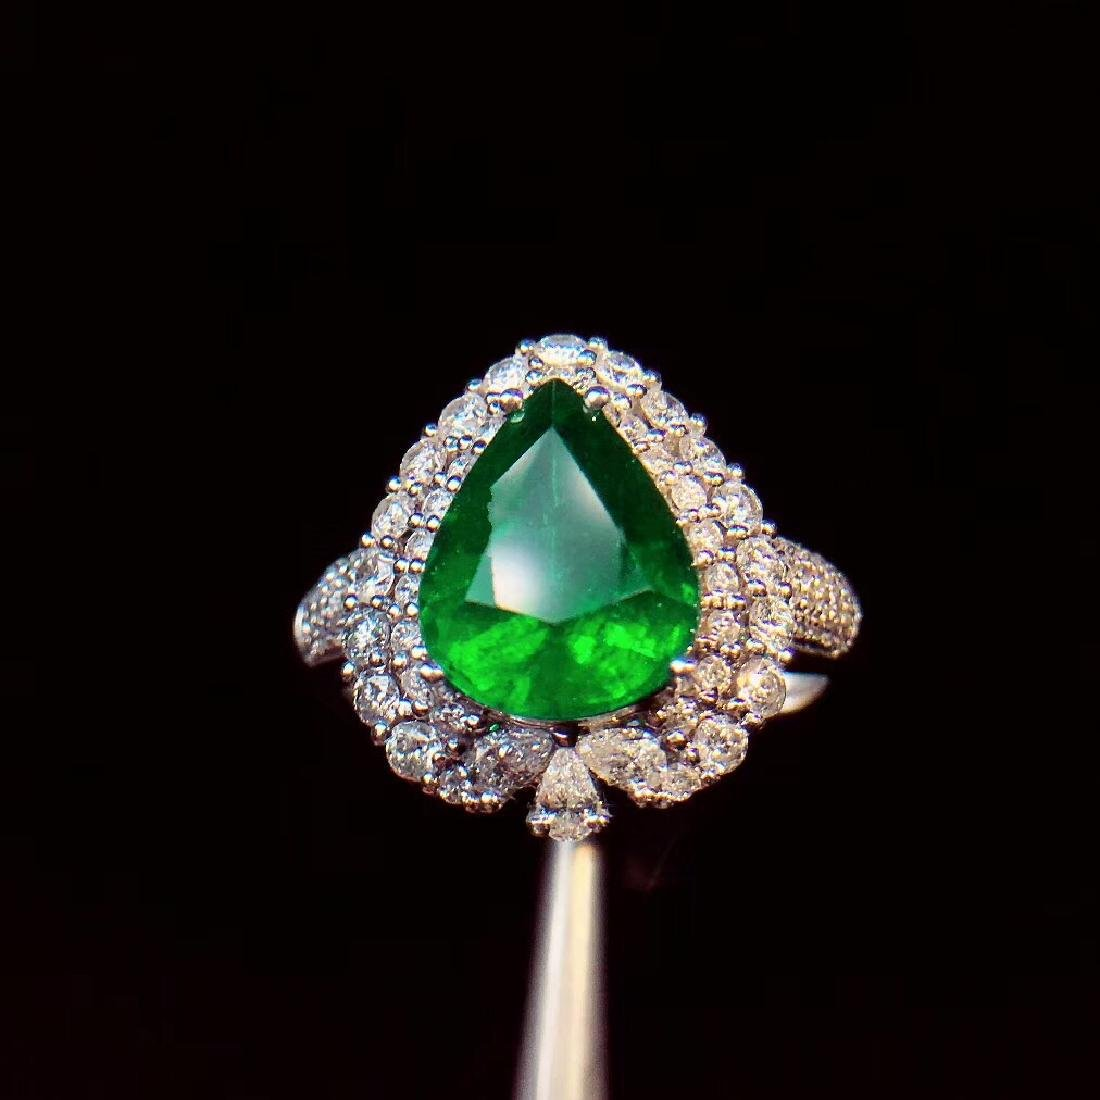 4ct Emerald Ring in 18kt white Gold